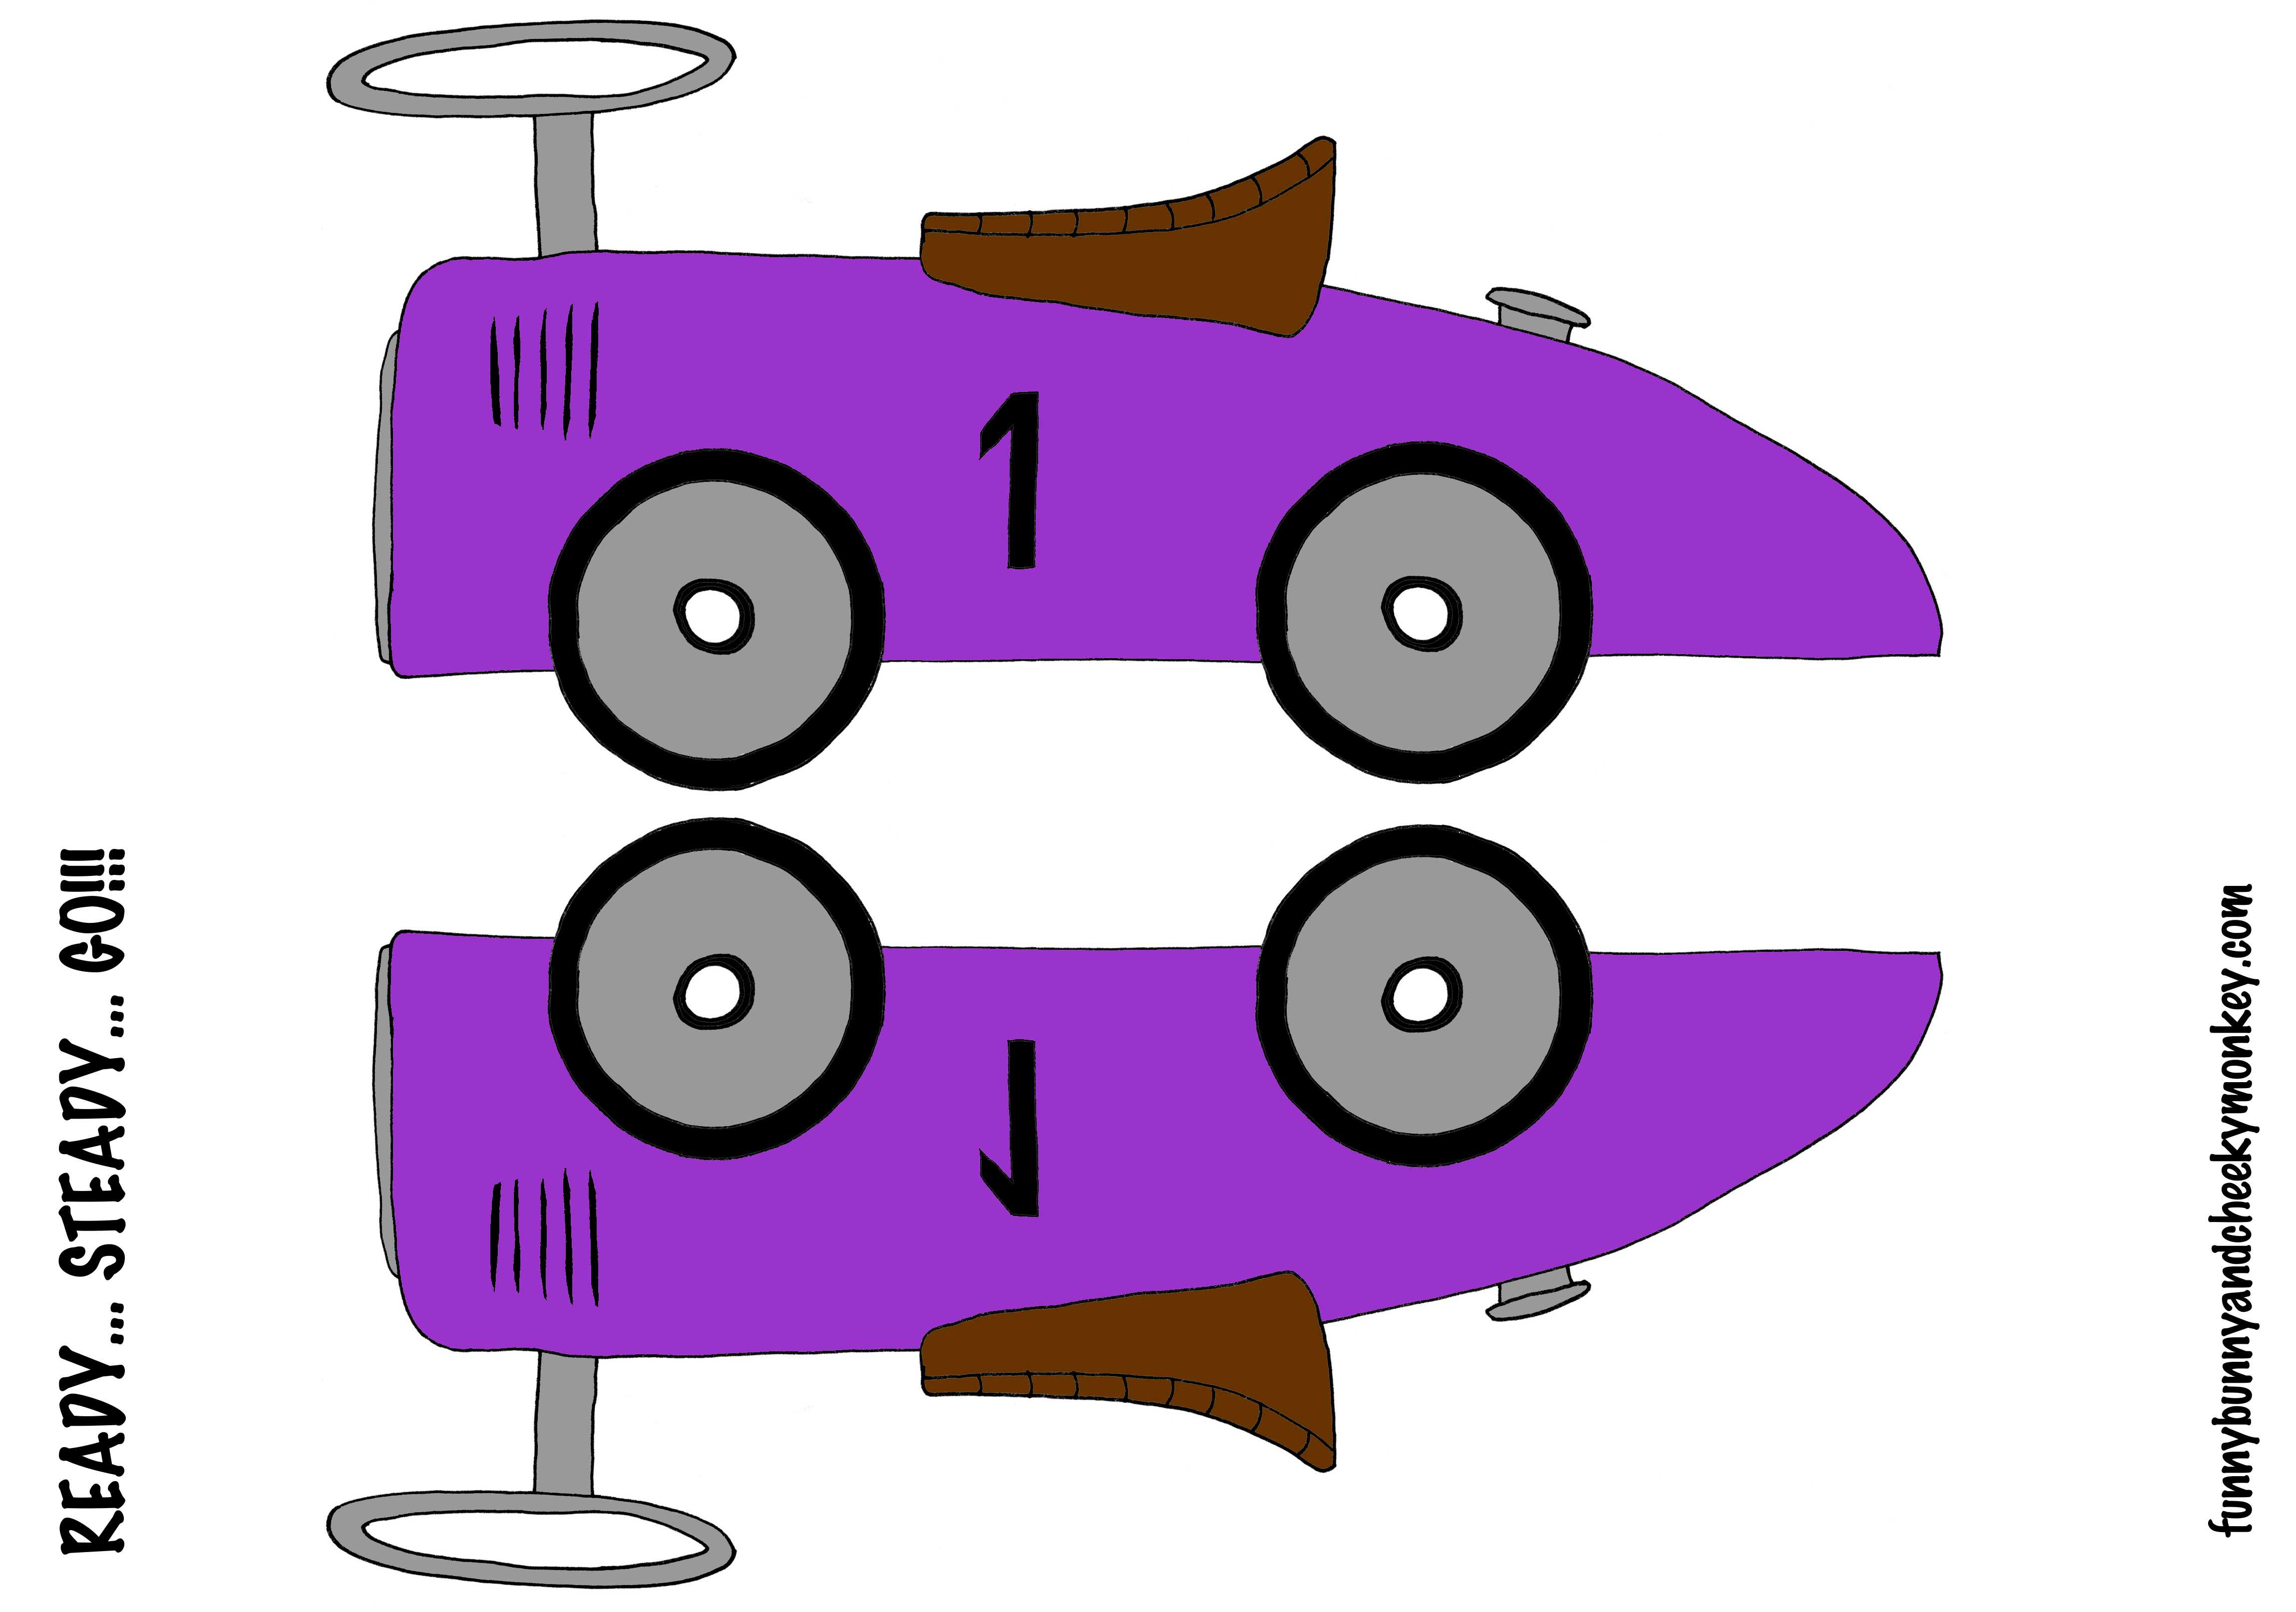 Race Car clipart purple Bunny and Picture Cheeky Funny